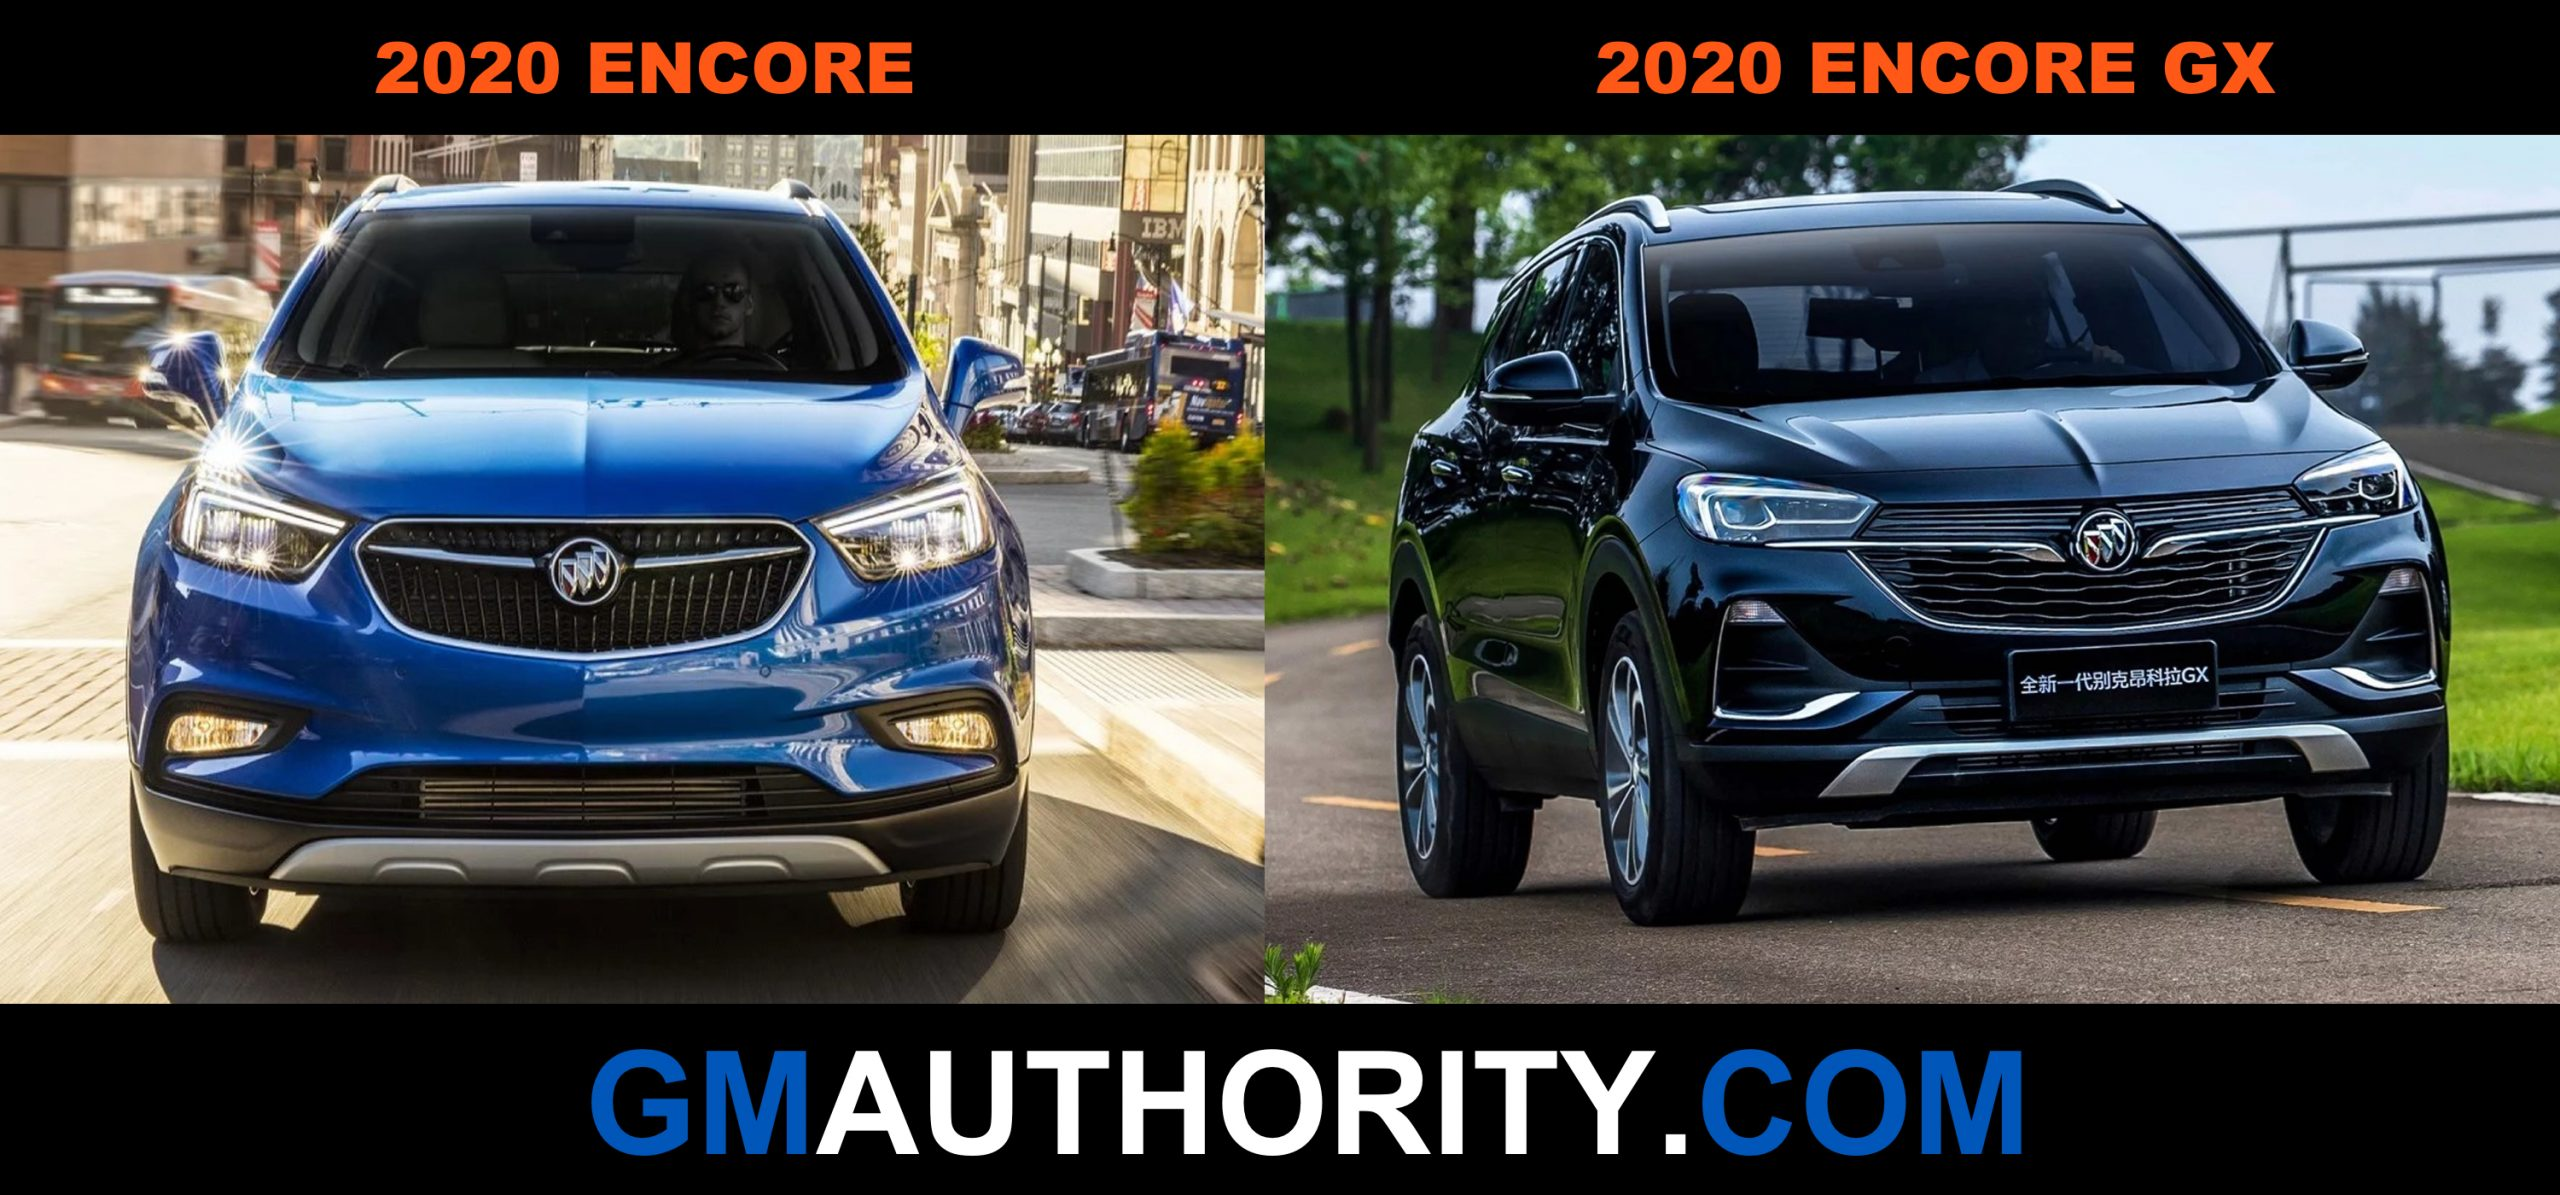 Buick Encore Vs. Buick Encore Gx: Visual Comparison | Gm New 2022 Buick Encore Gx Build, Curb Weight, Cargo Space